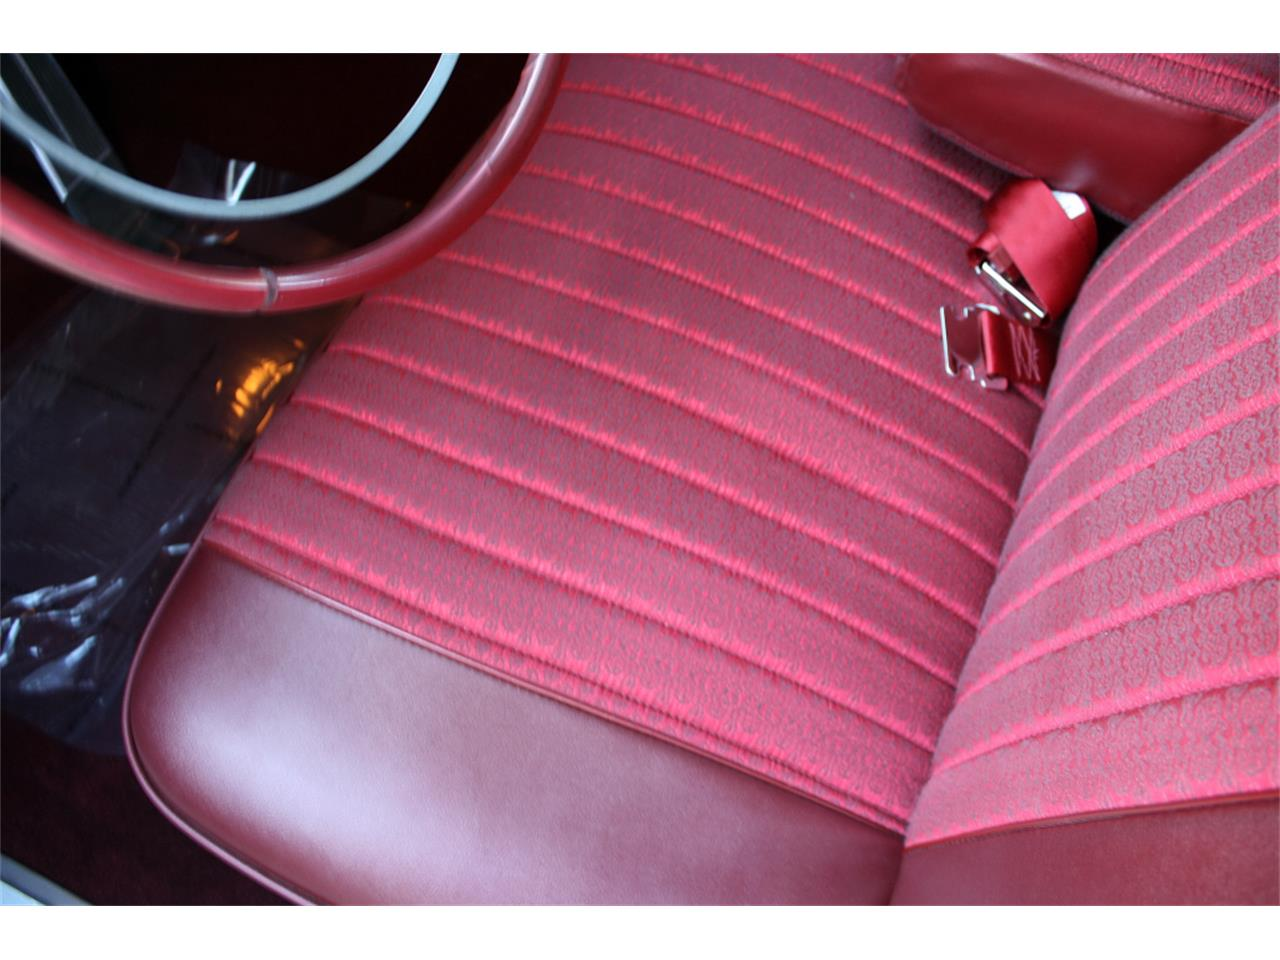 Large Picture of Classic 1968 Chrysler Imperial located in Florida - $16,500.00 Offered by MJC Classic Cars - MA1H